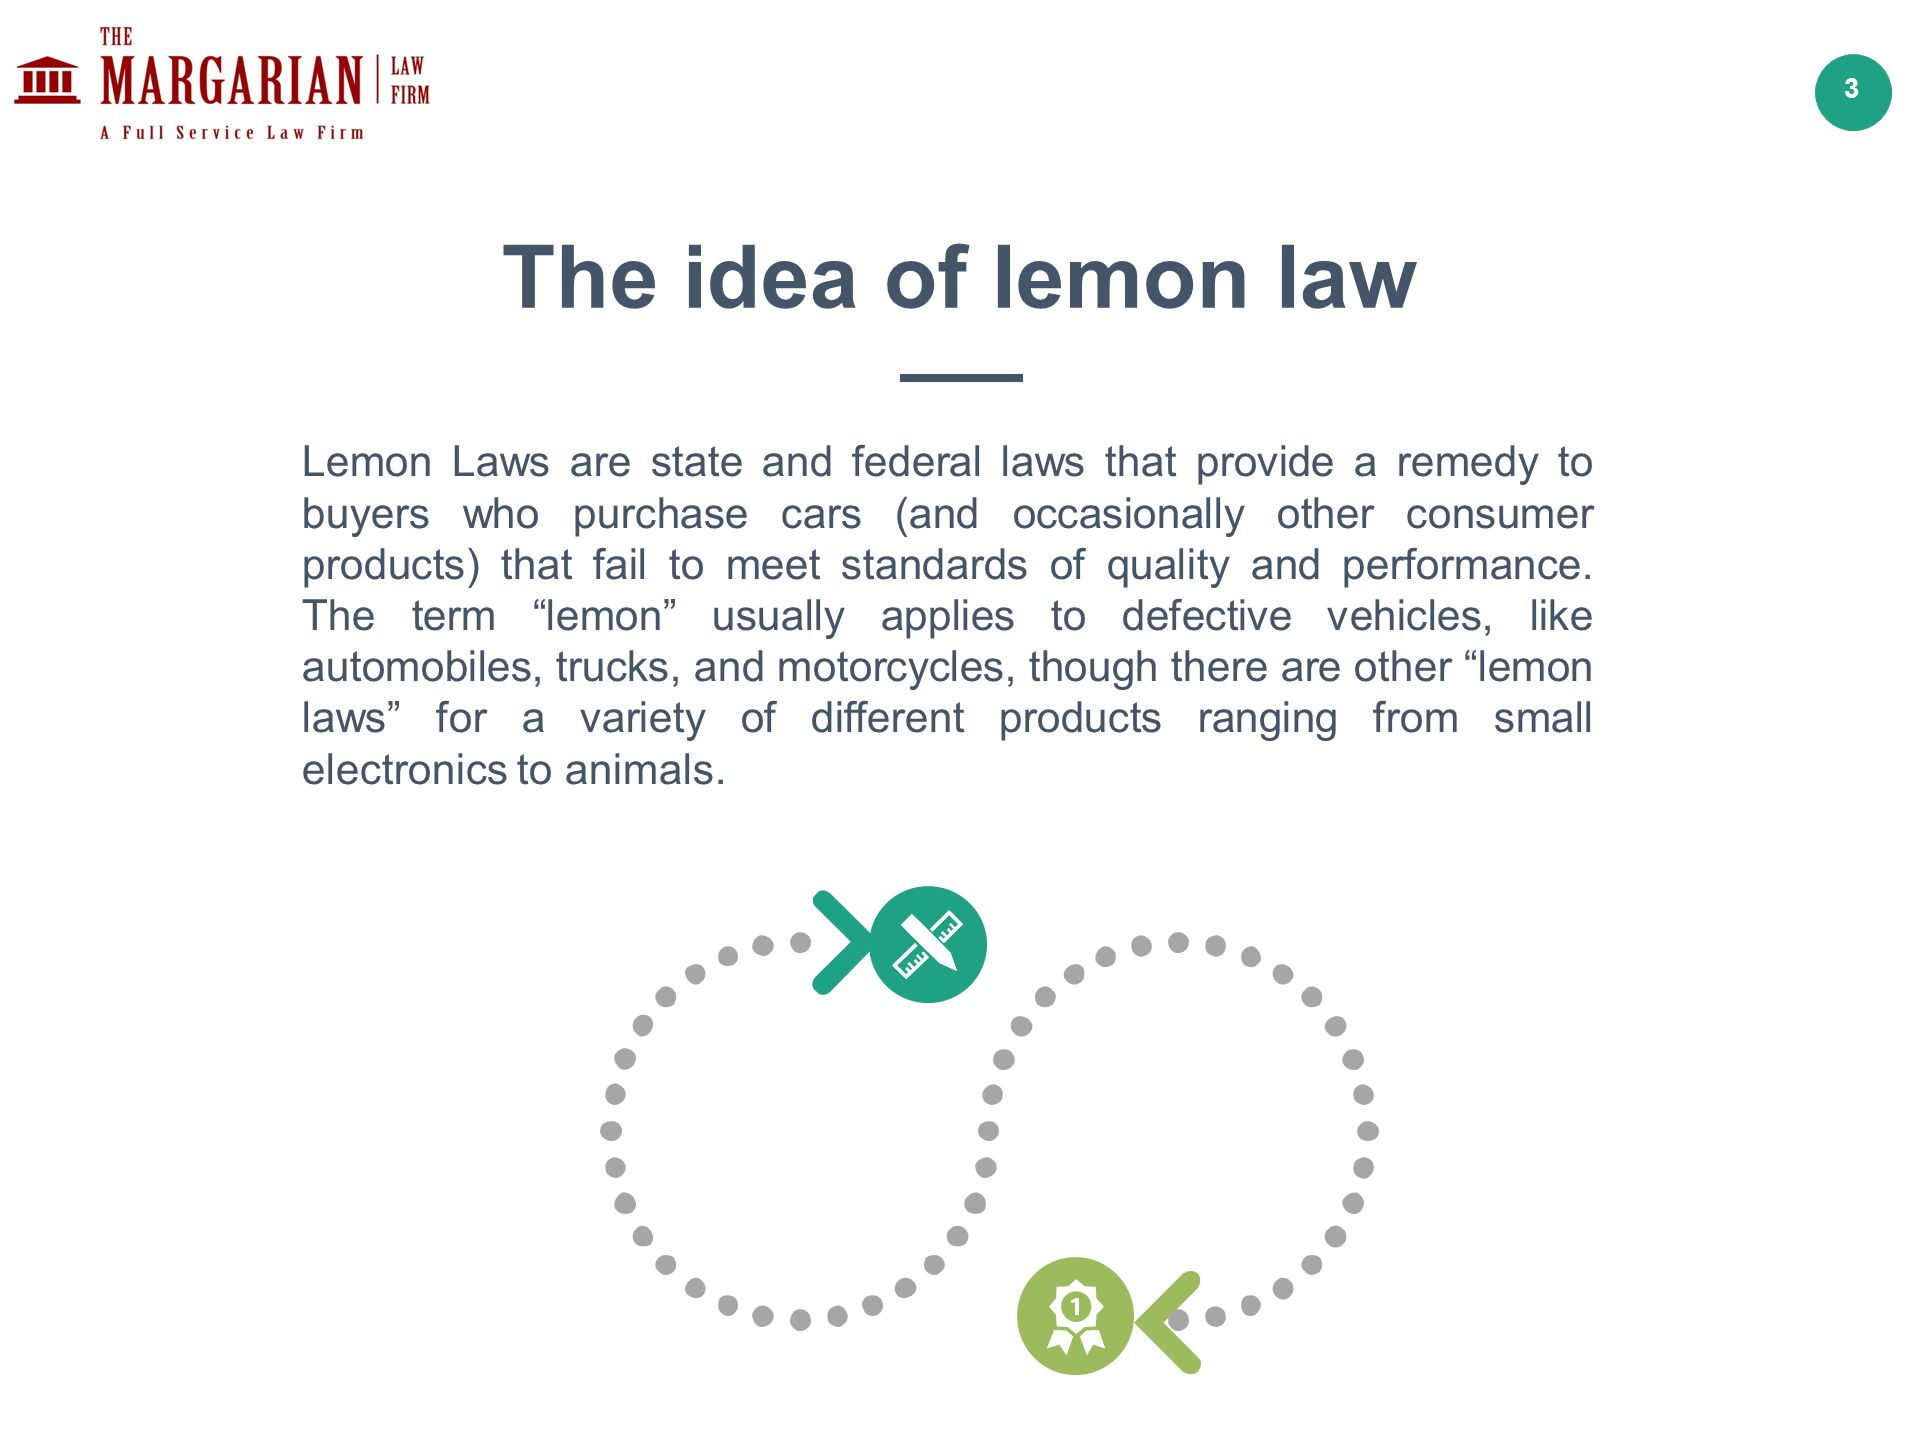 3 lemon laws are state and federal laws that provide a remedy to ers who purchase